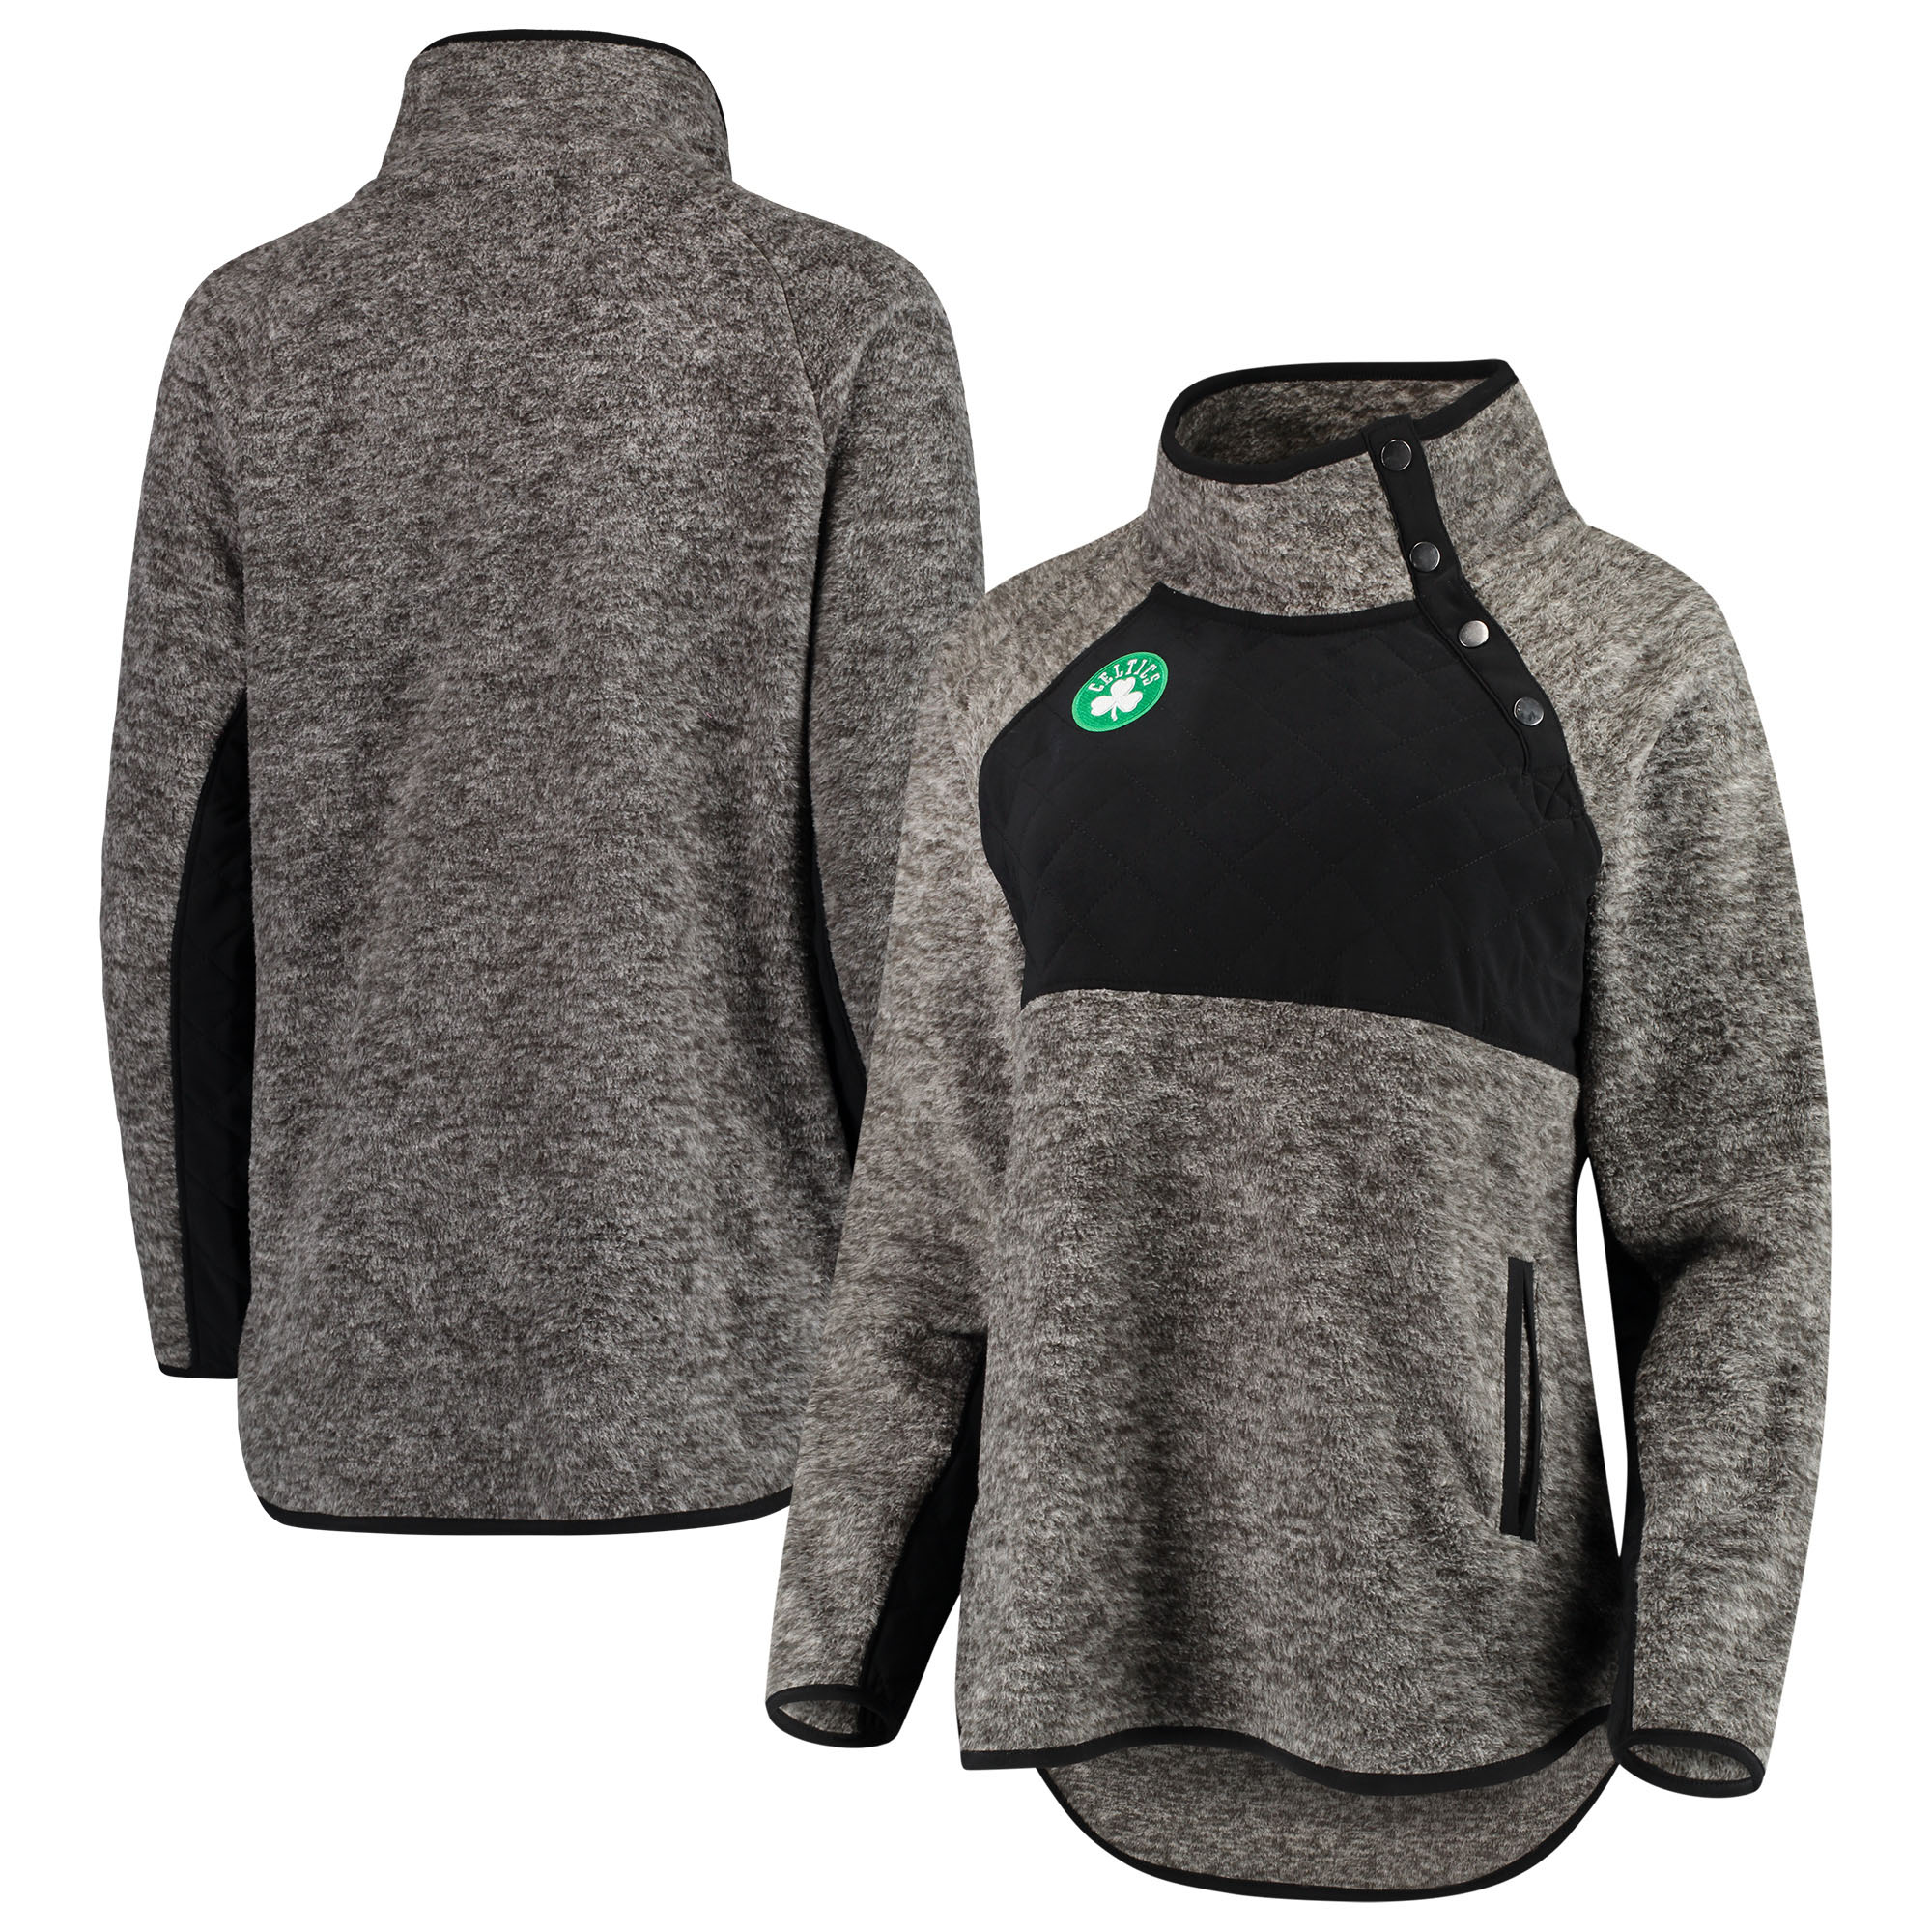 Boston Celtics Women's Sidenote Quilted Snap-Up Pullover Jacket - Black